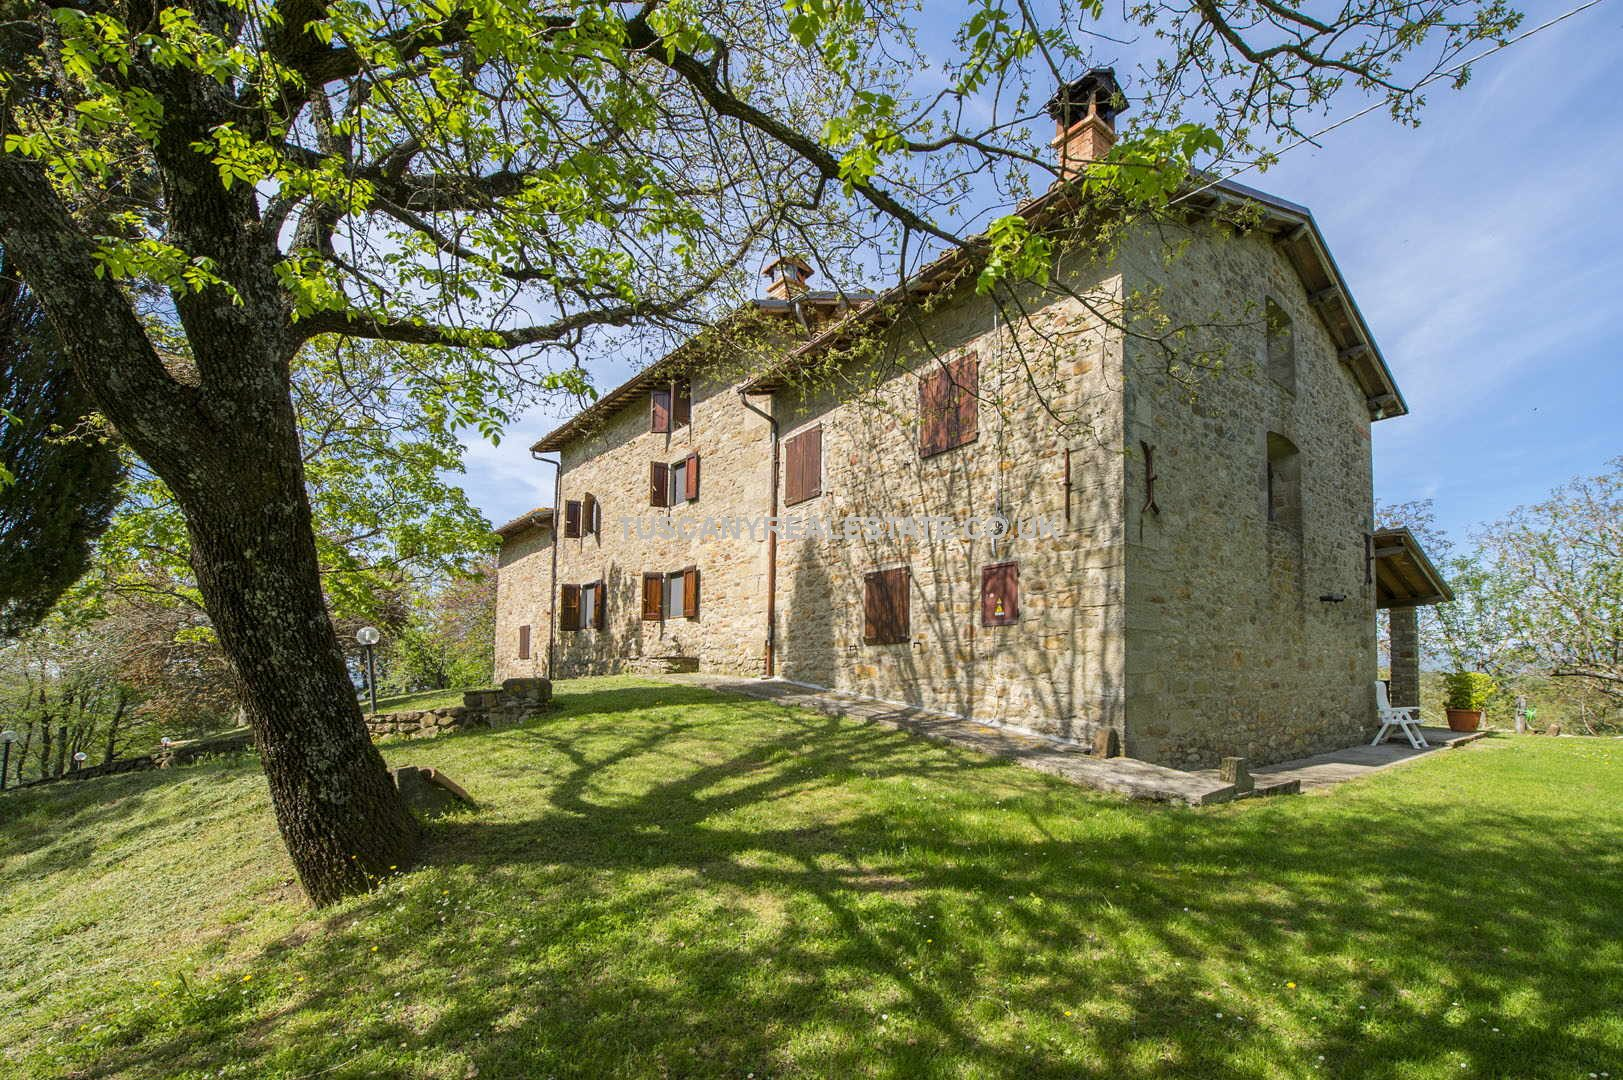 Large Tuscan Farmhouse For Sale Near Sansepolcro - 7 Bedrooms